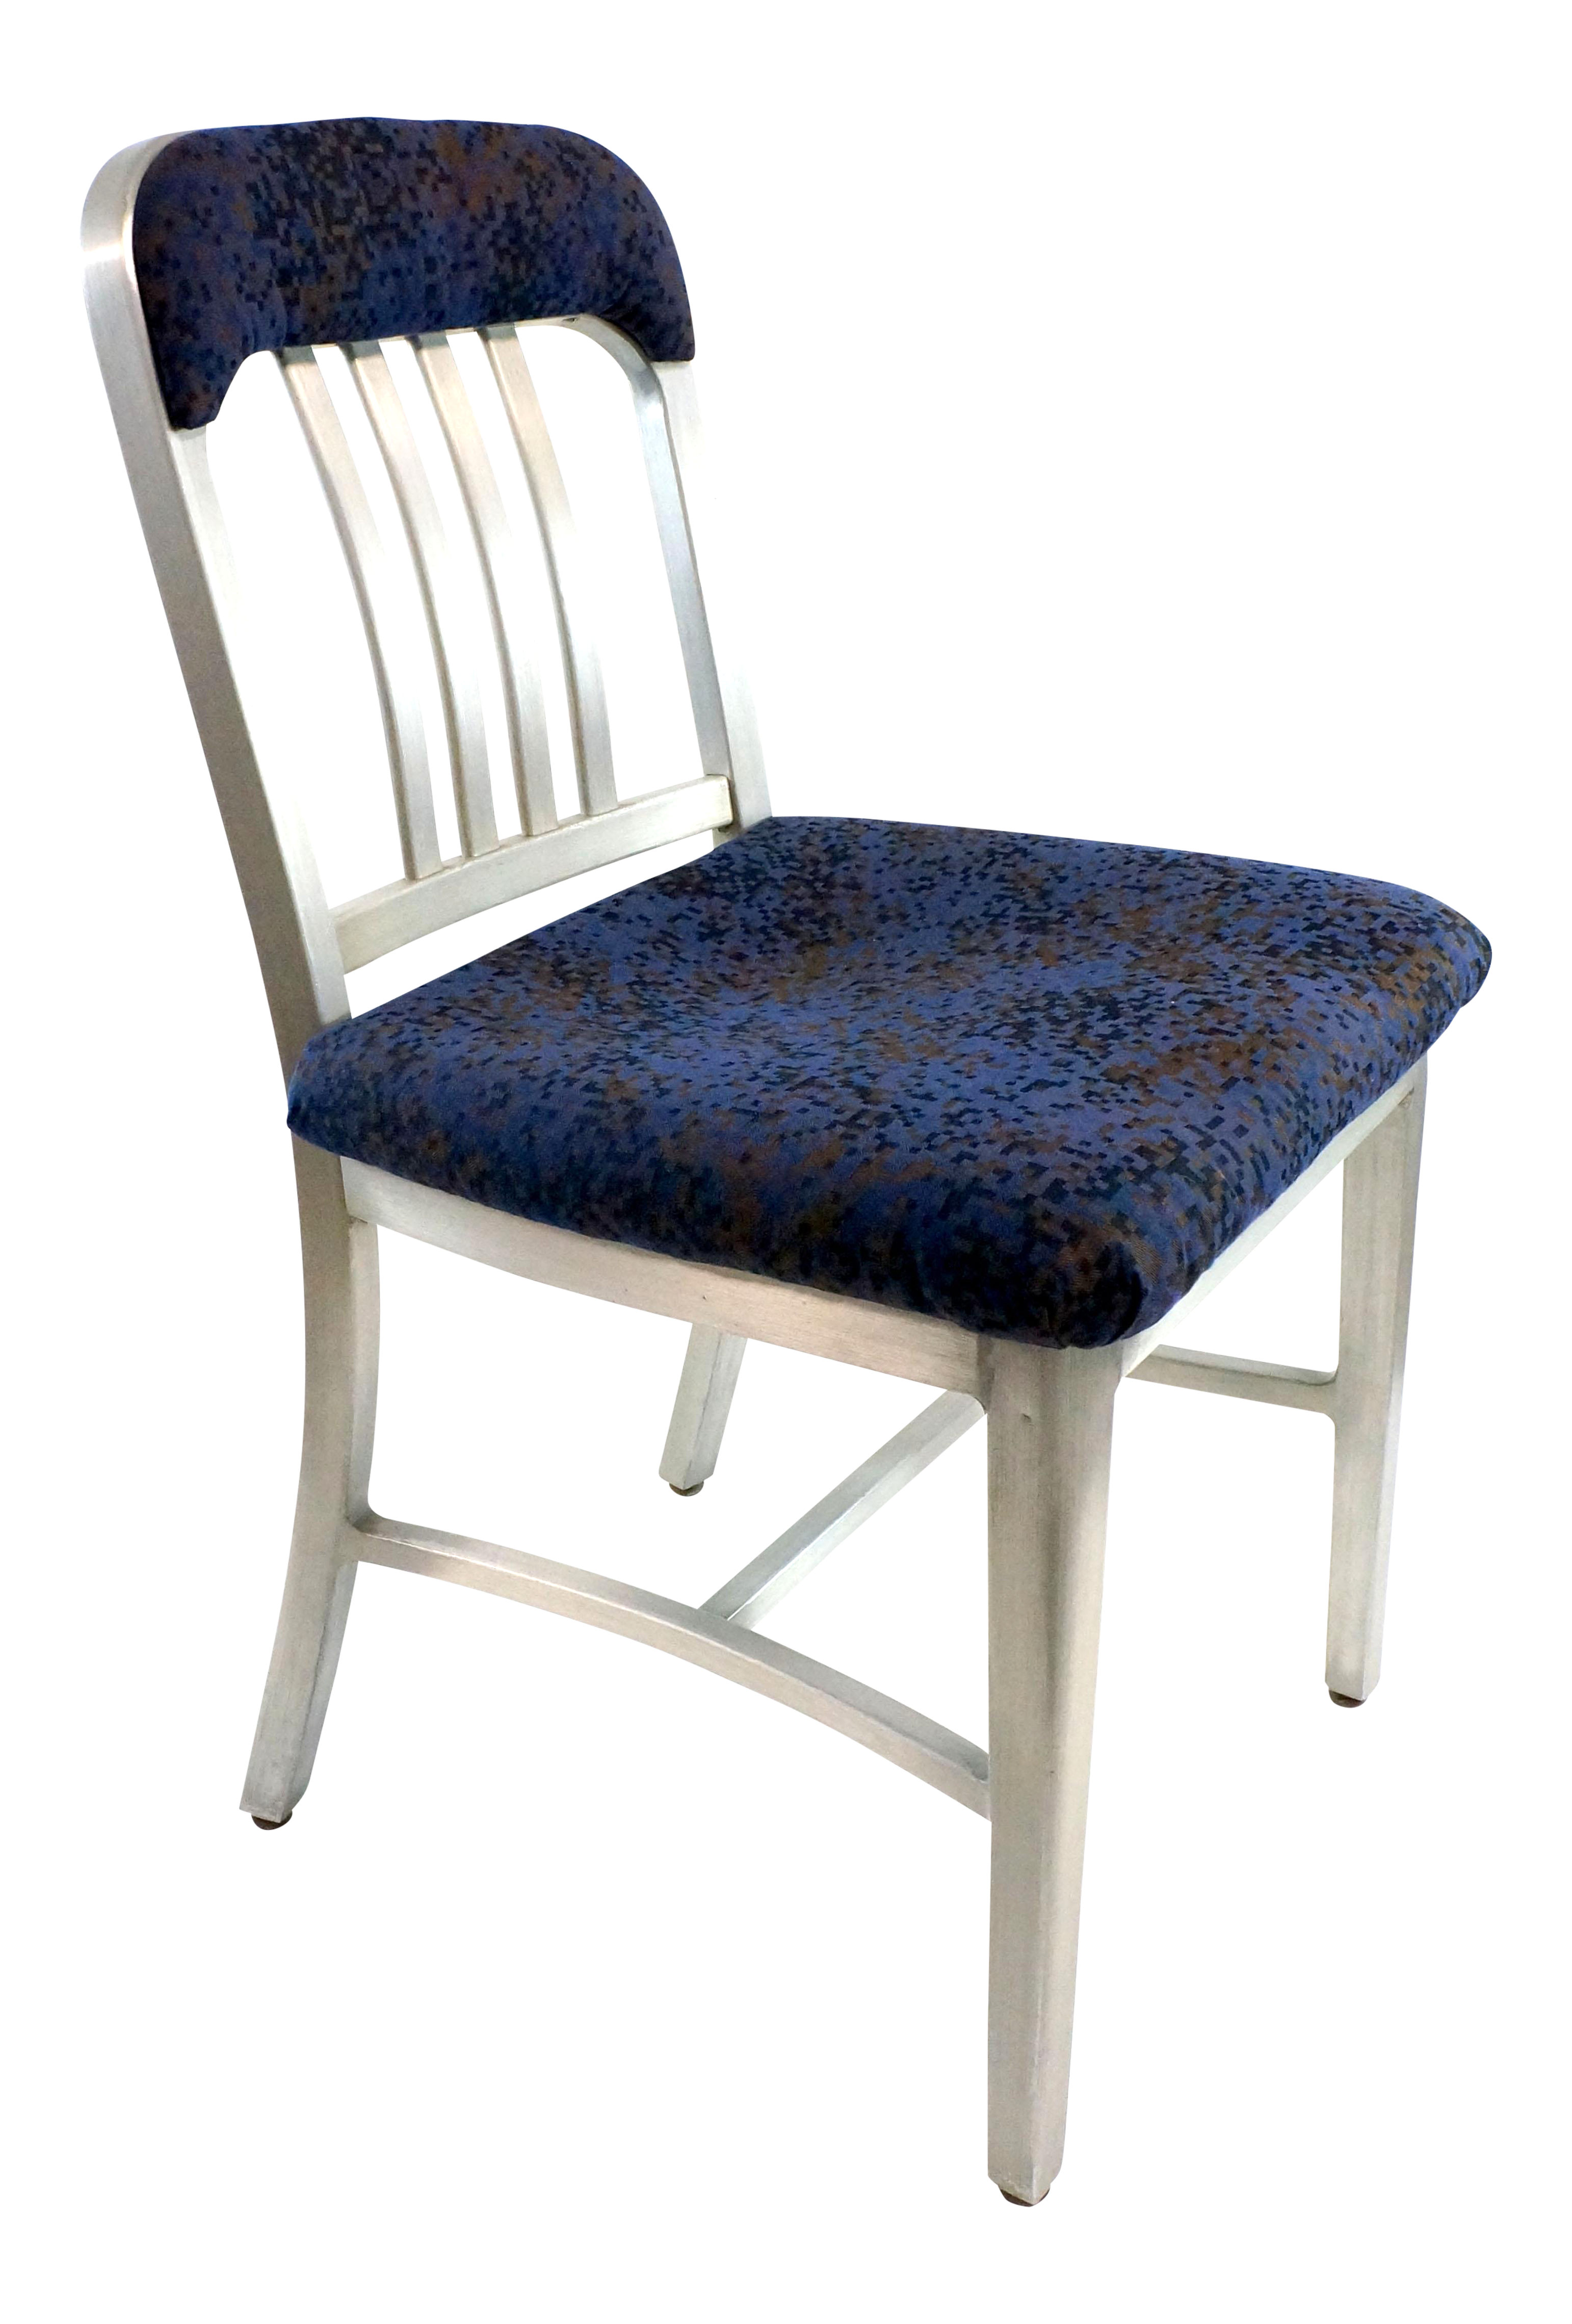 Remarkable Goodform Chair For Sale Compare 71 Second Hand Ads Bralicious Painted Fabric Chair Ideas Braliciousco